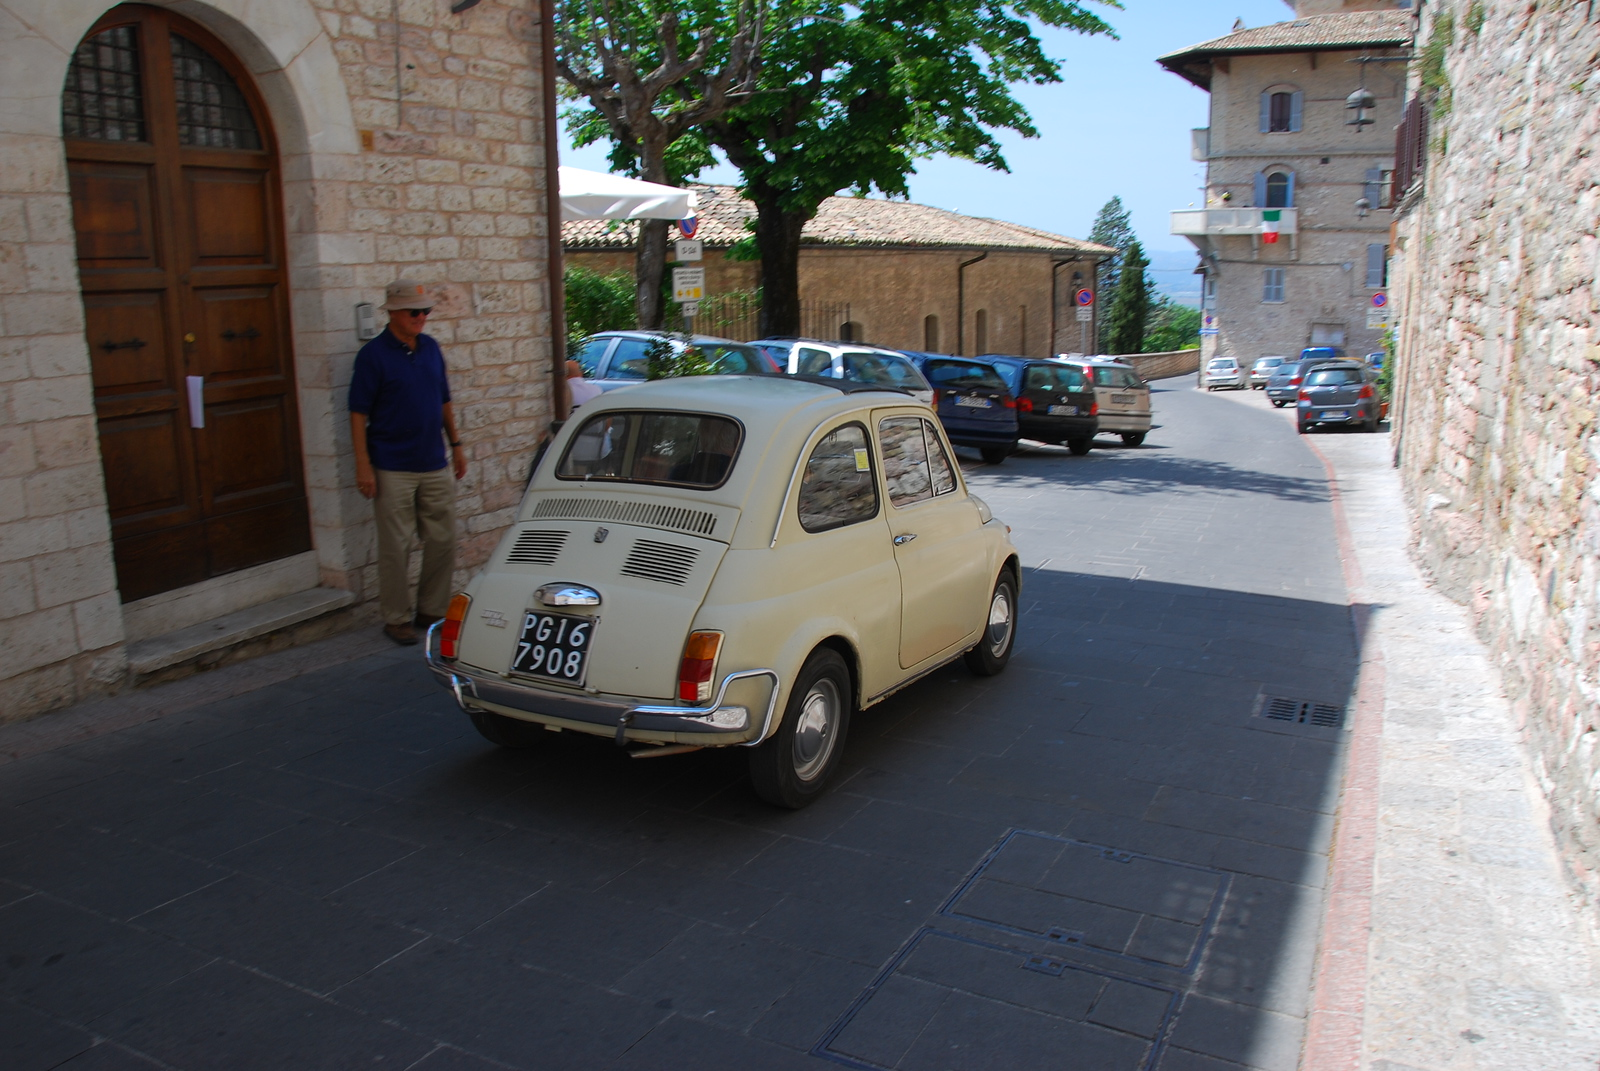 Another Assisi 500